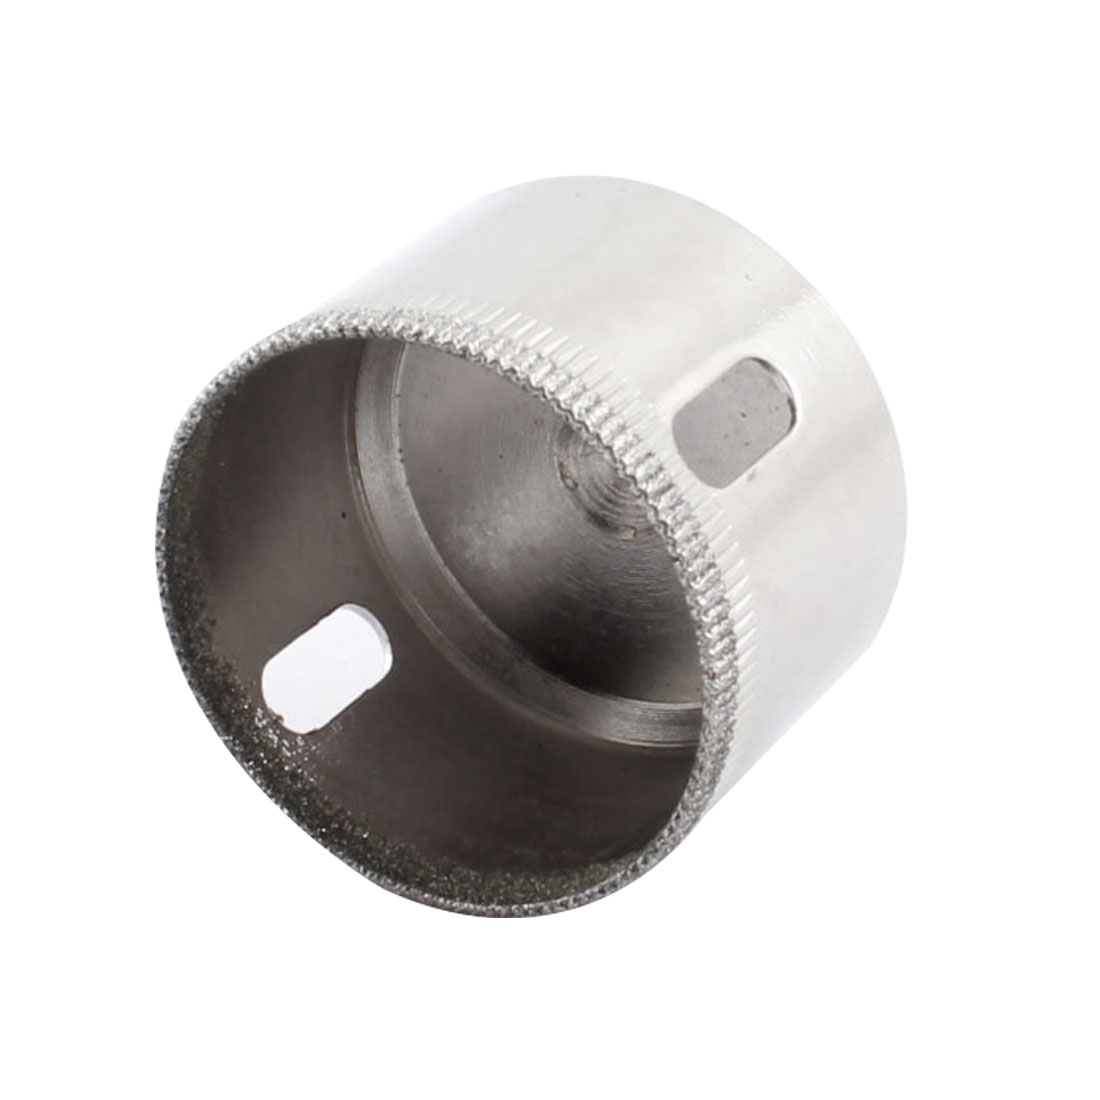 Metal Round Shank 45mm Diameter Glass Tile Hole Saw Drilling Tool